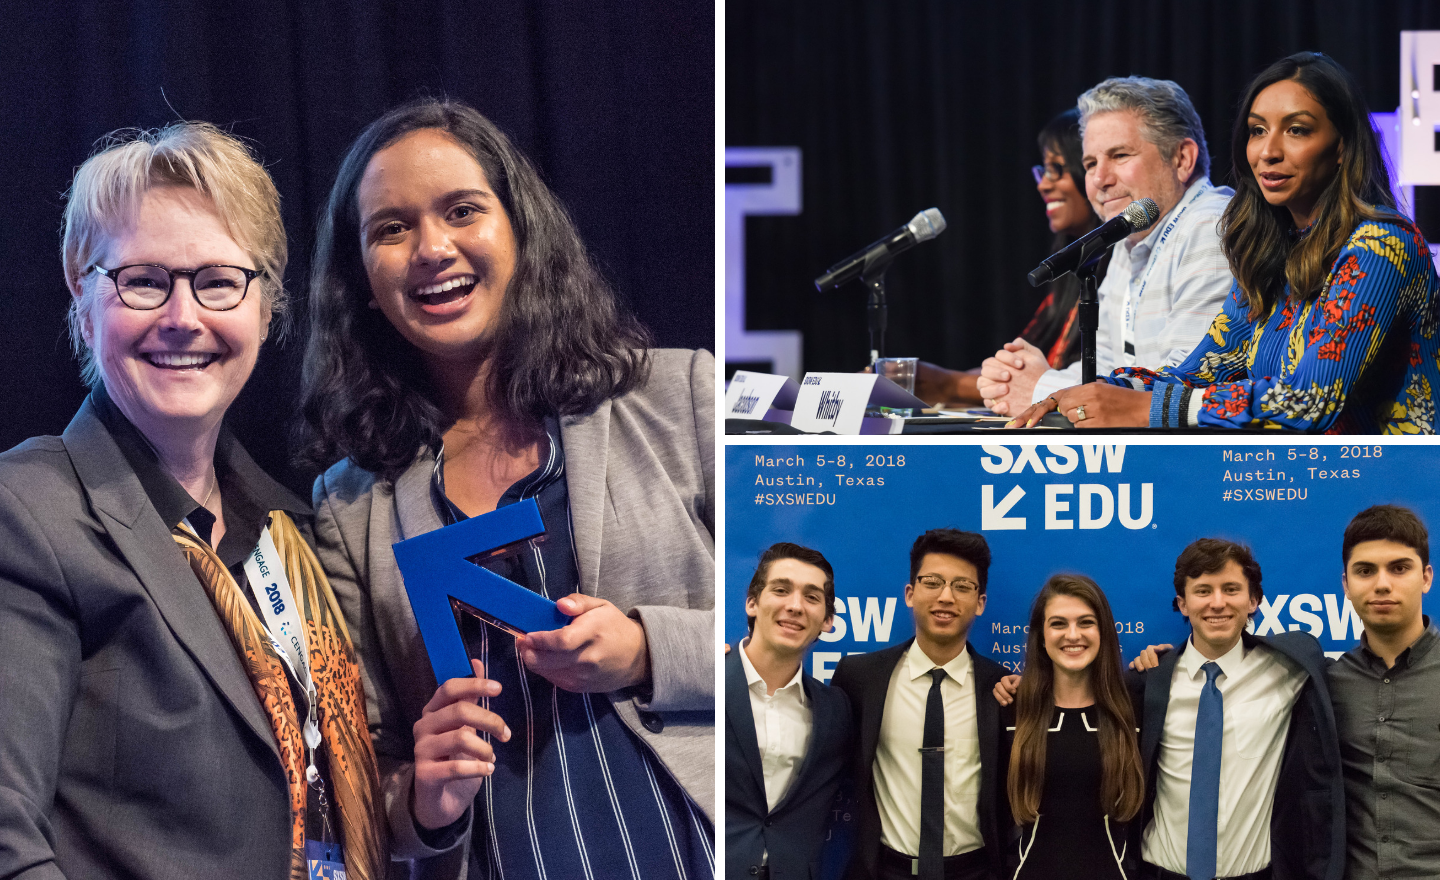 SXSW EDU 2018 Student Startup competition